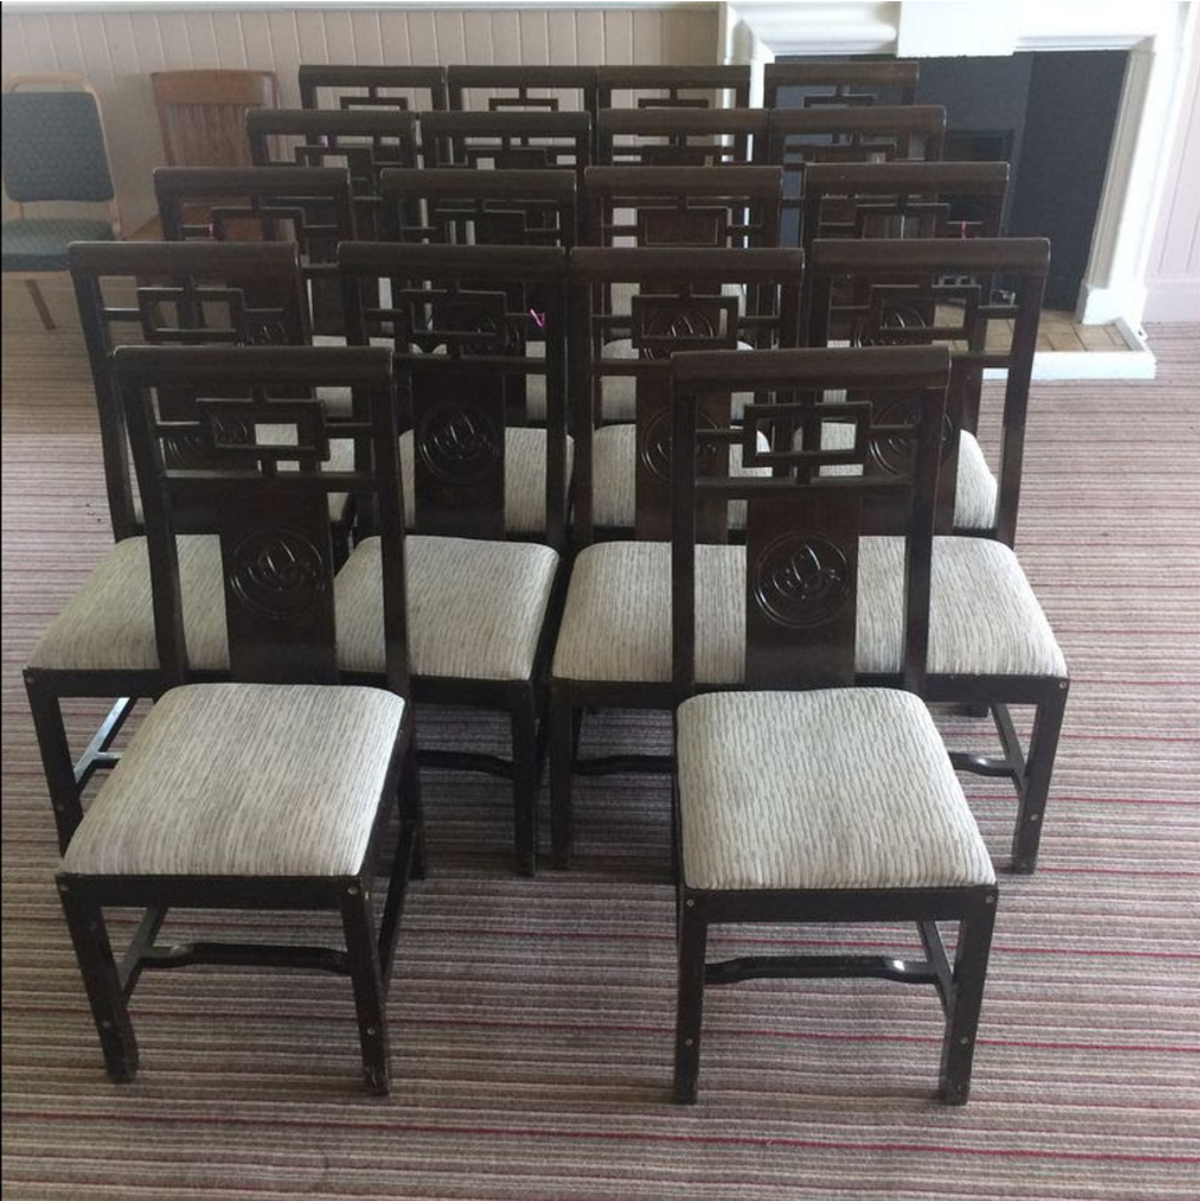 Used Dining Room Chairs: Secondhand Hotel Furniture